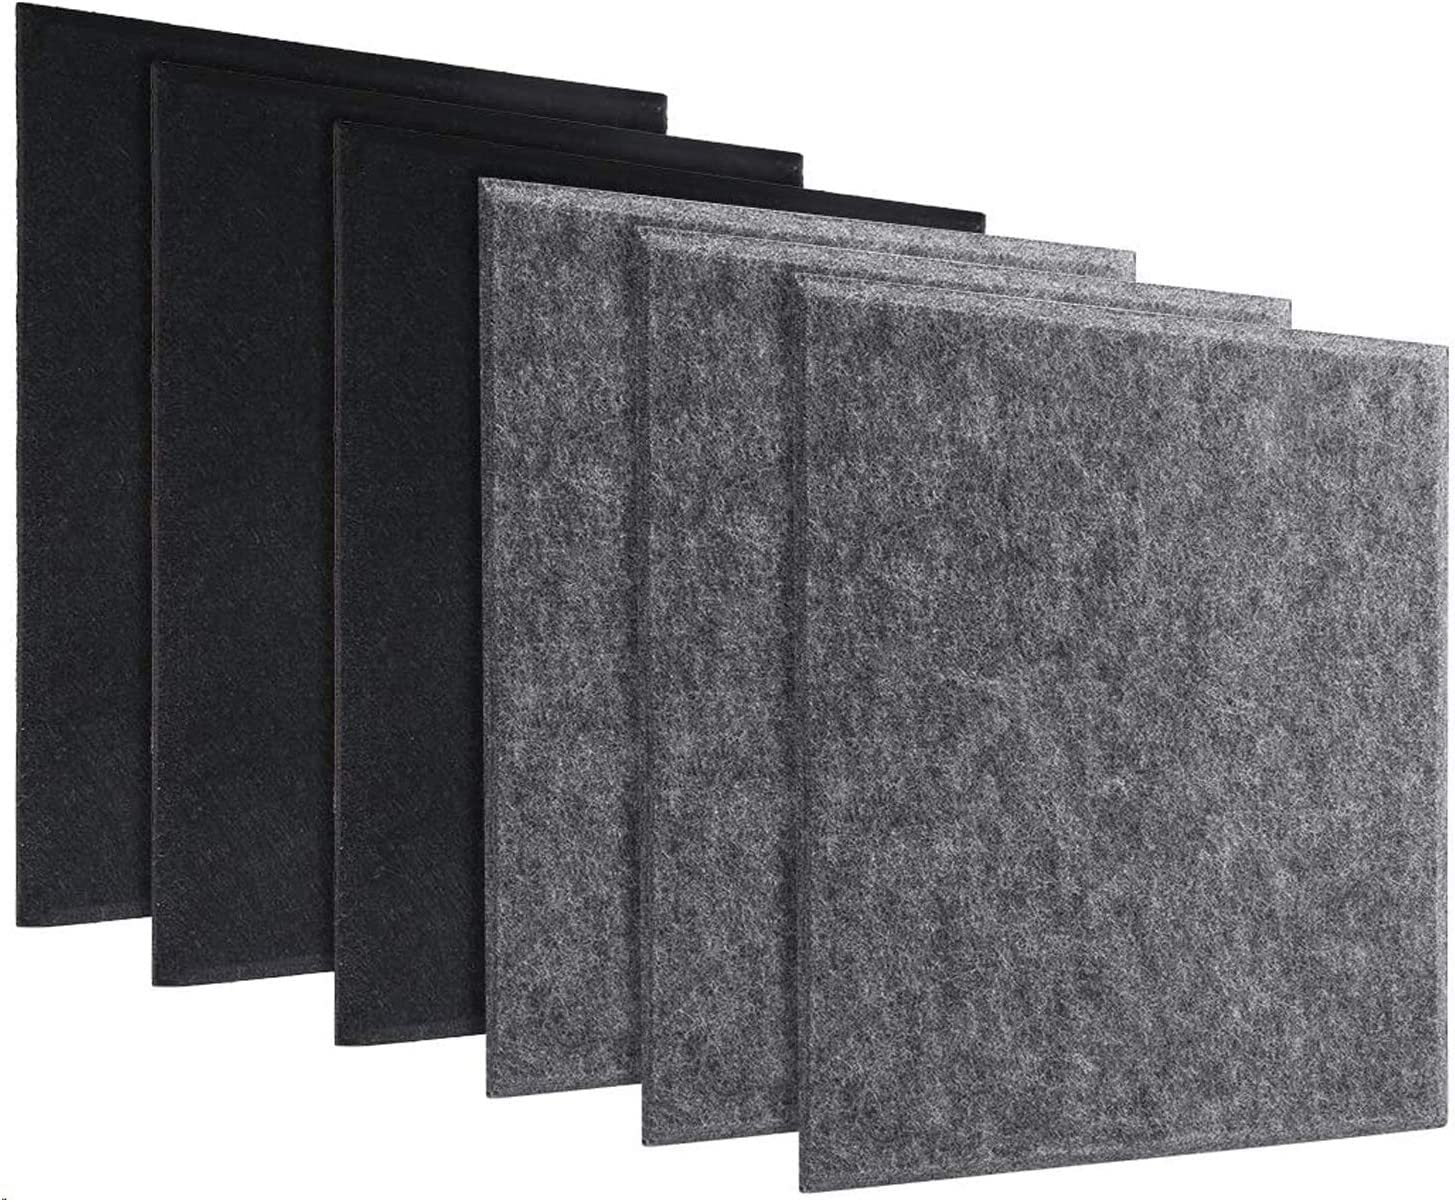 Acoustic Panels, Studio Foam Soundproofing Panels Nosie Dampening Foam Studio Music Equipment Acoustical Treatments Foam